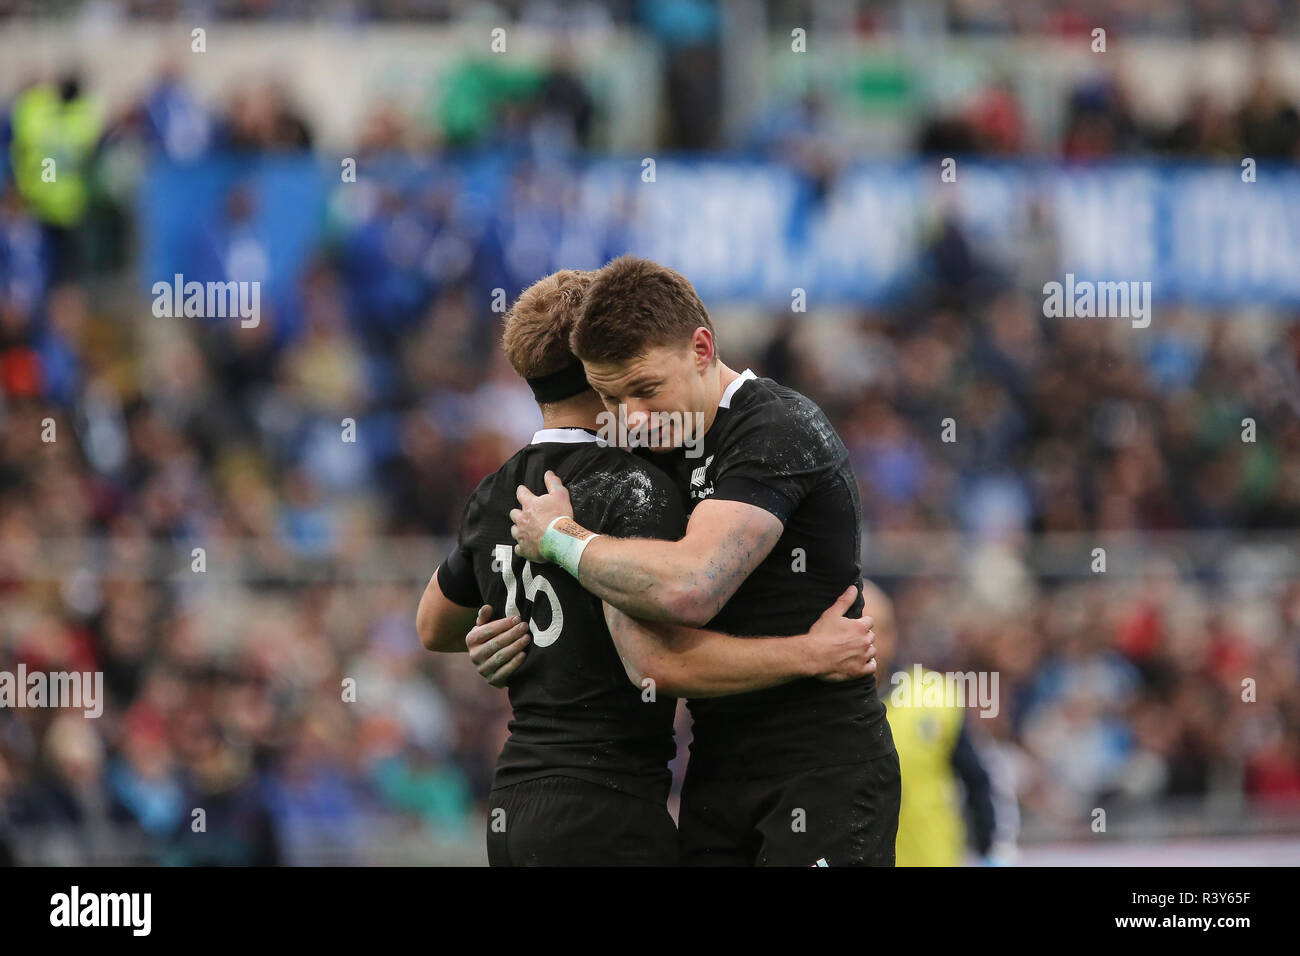 Roma, Italy. 24th November, 2018. All Blacks' fly half Beauden Barrett celebrates the try with his team mate Damian McKenzie in the match against Italy in November Cattolica Test Match 2018 Credit: Massimiliano Carnabuci/Alamy Live News - Stock Image